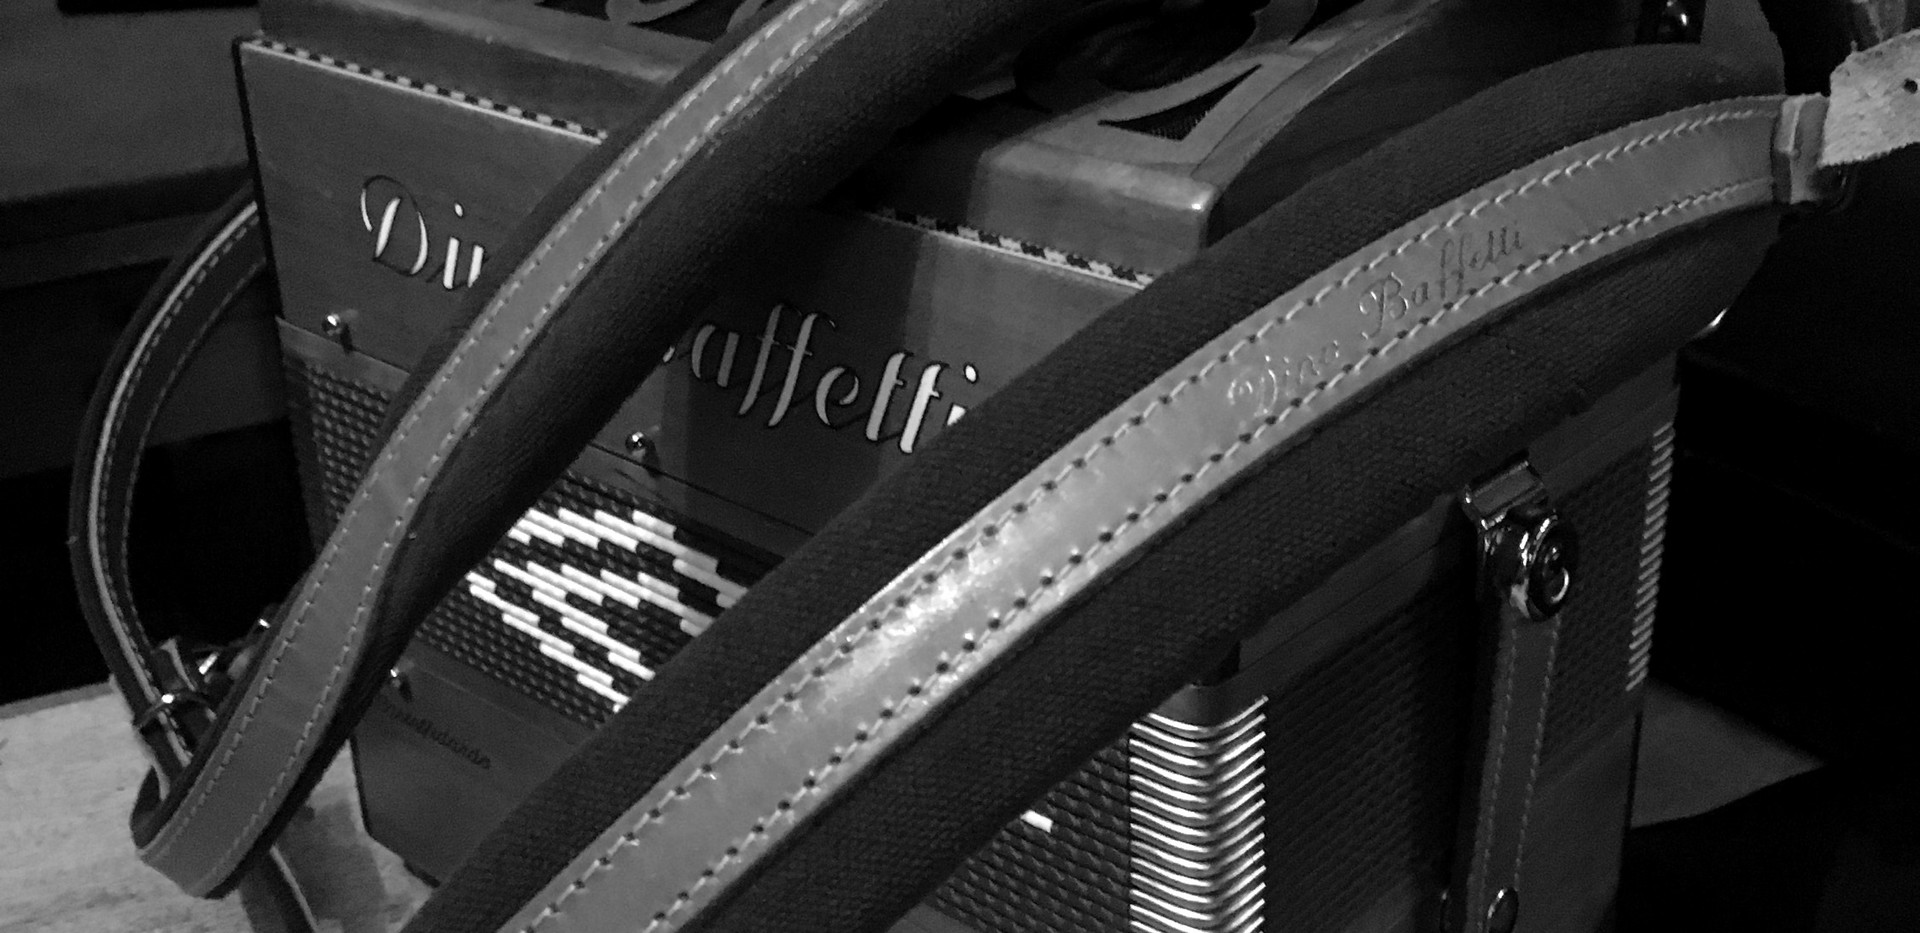 Robin's Melodeon resting